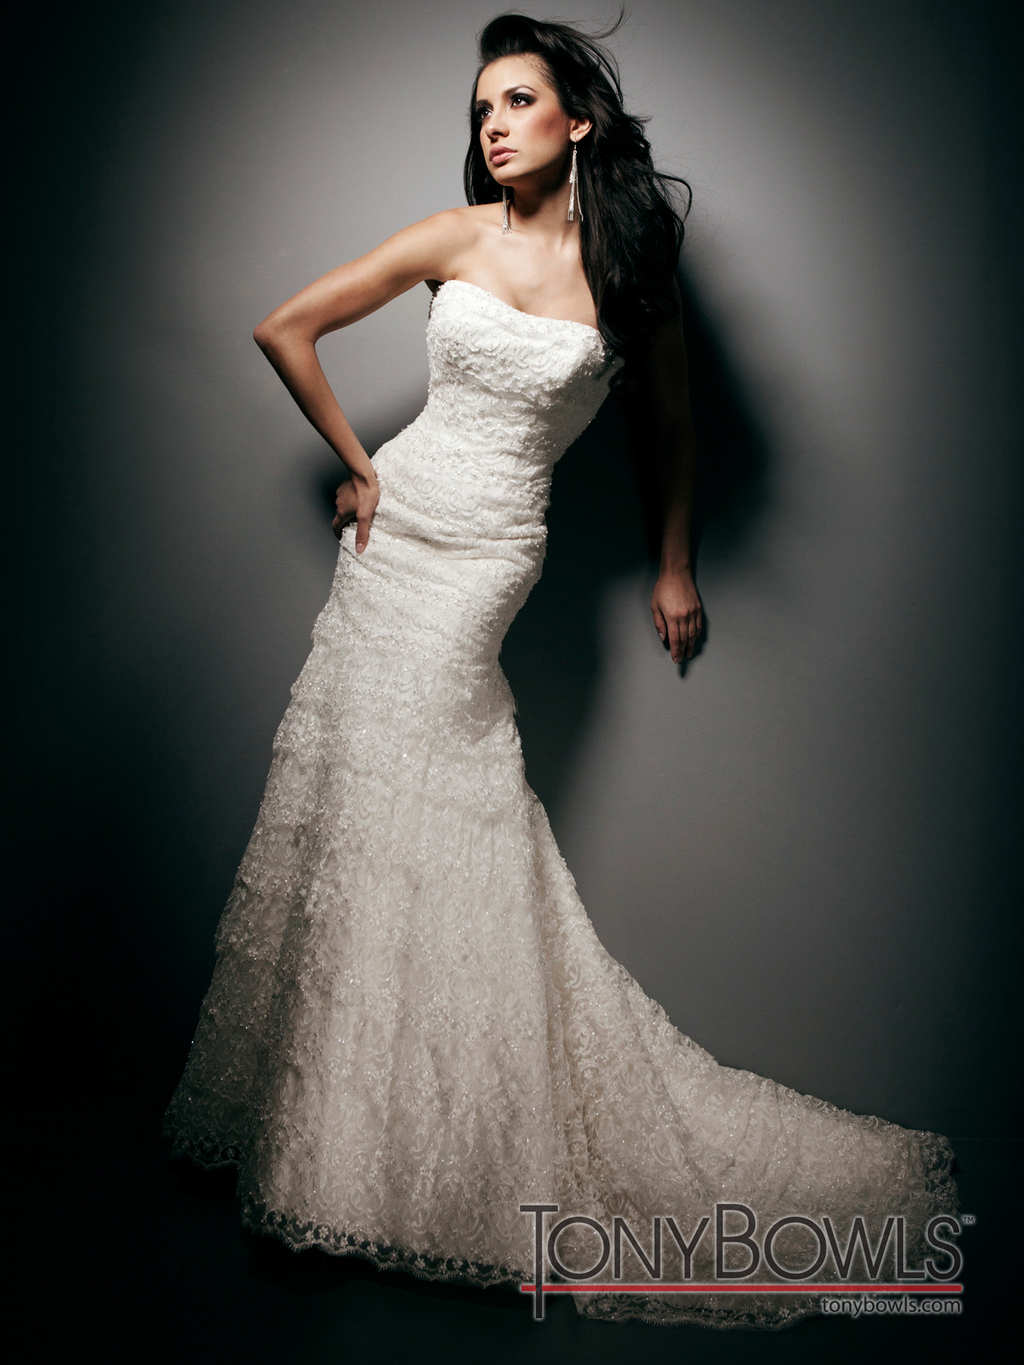 Tony-bowls-wedding-dress-strapless-mermaid.full